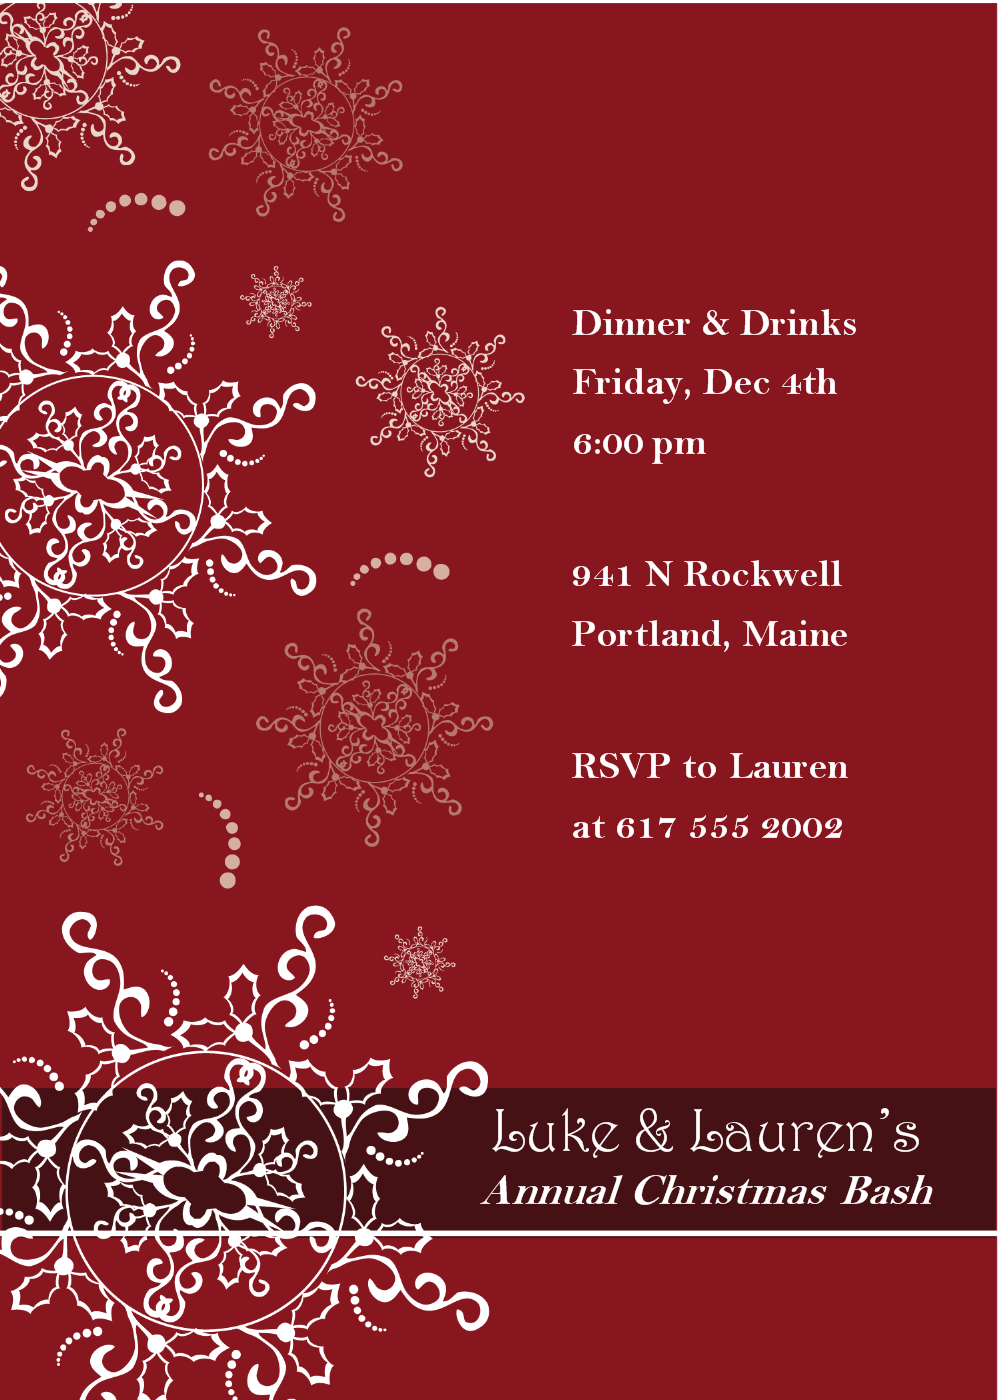 Christmas Party Invitation Templates Bing Images